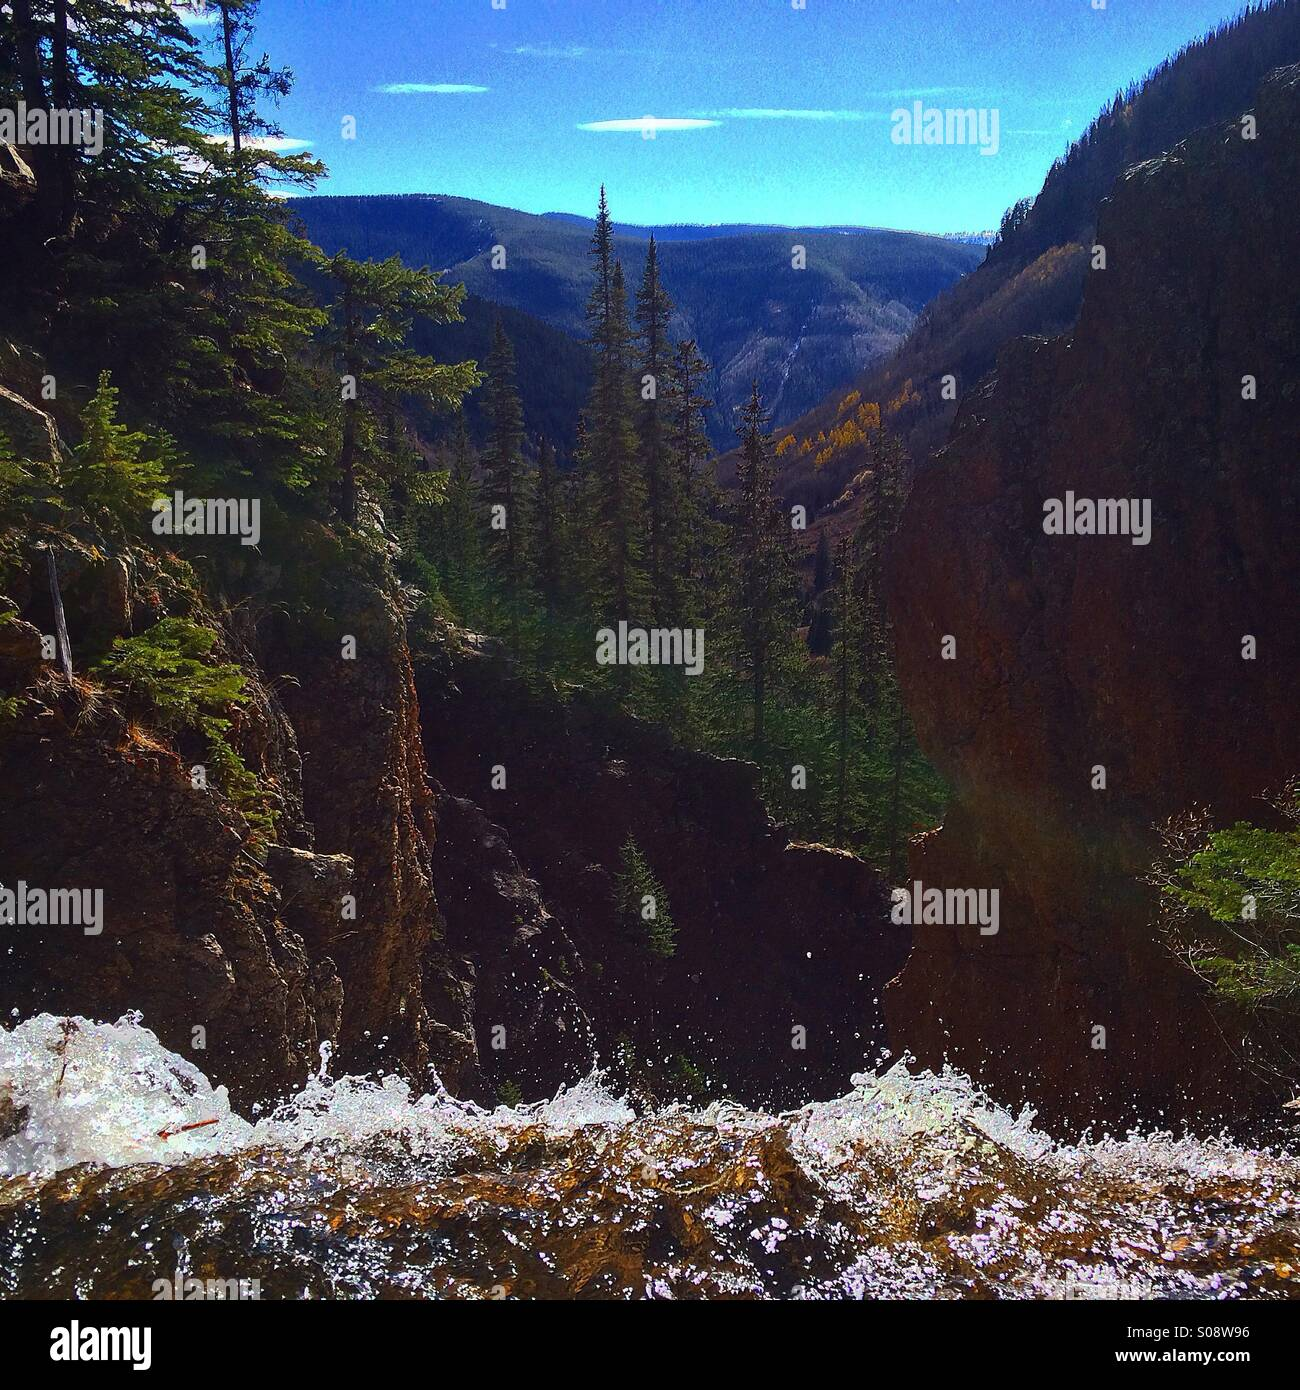 101 Of The Most Beautiful Hikes In Colorado: Colorado Waterfall Waterfalls Stock Photos & Colorado